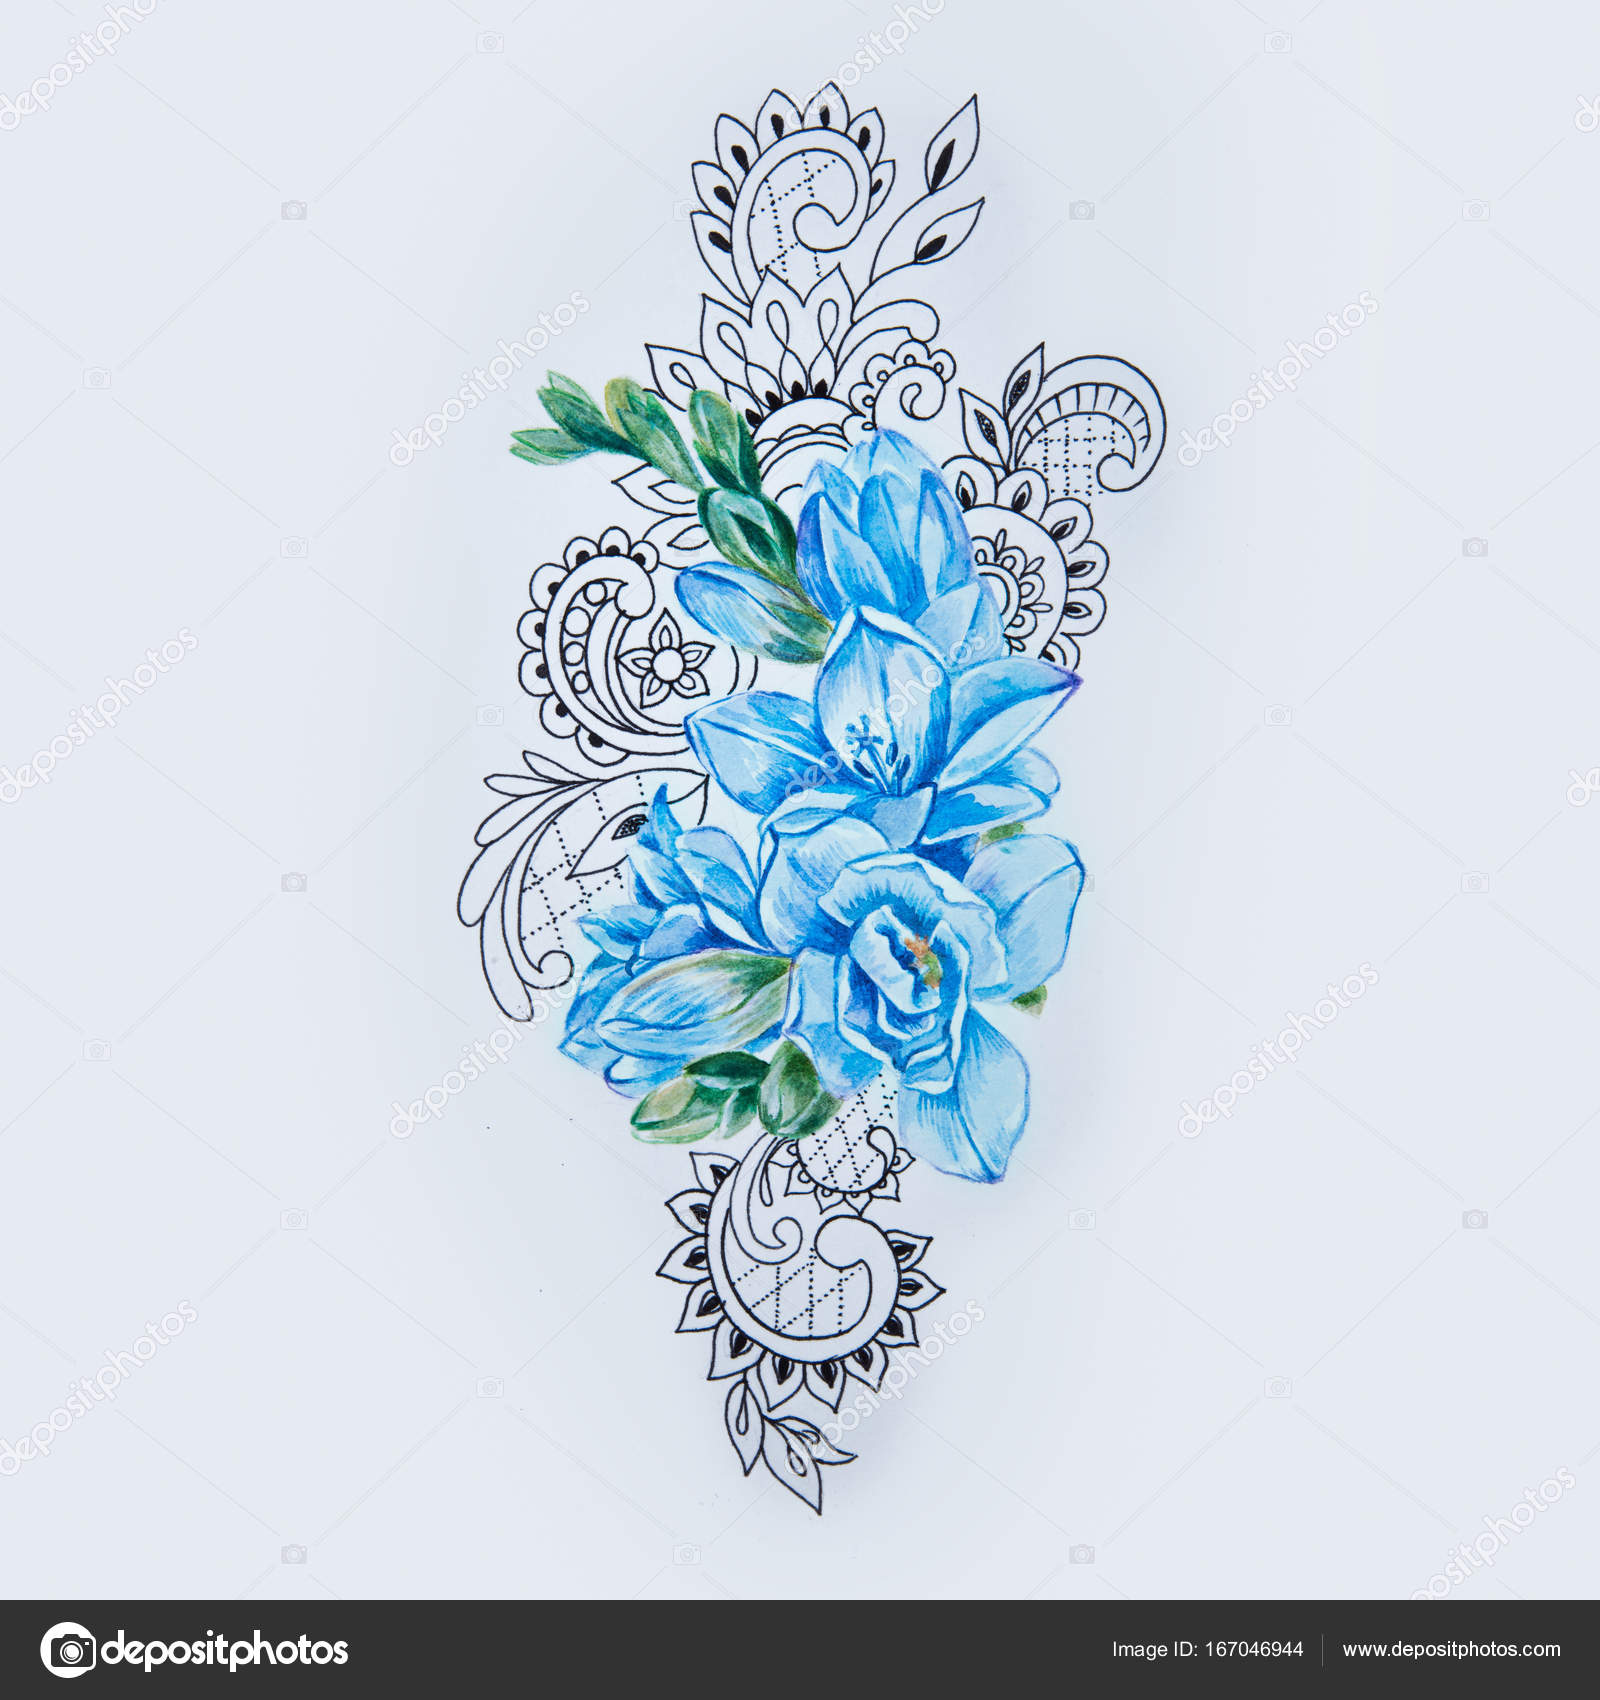 06c11e9aa A sketch of blue freesia flower in a beautiful pattern on a white background.–  stock image